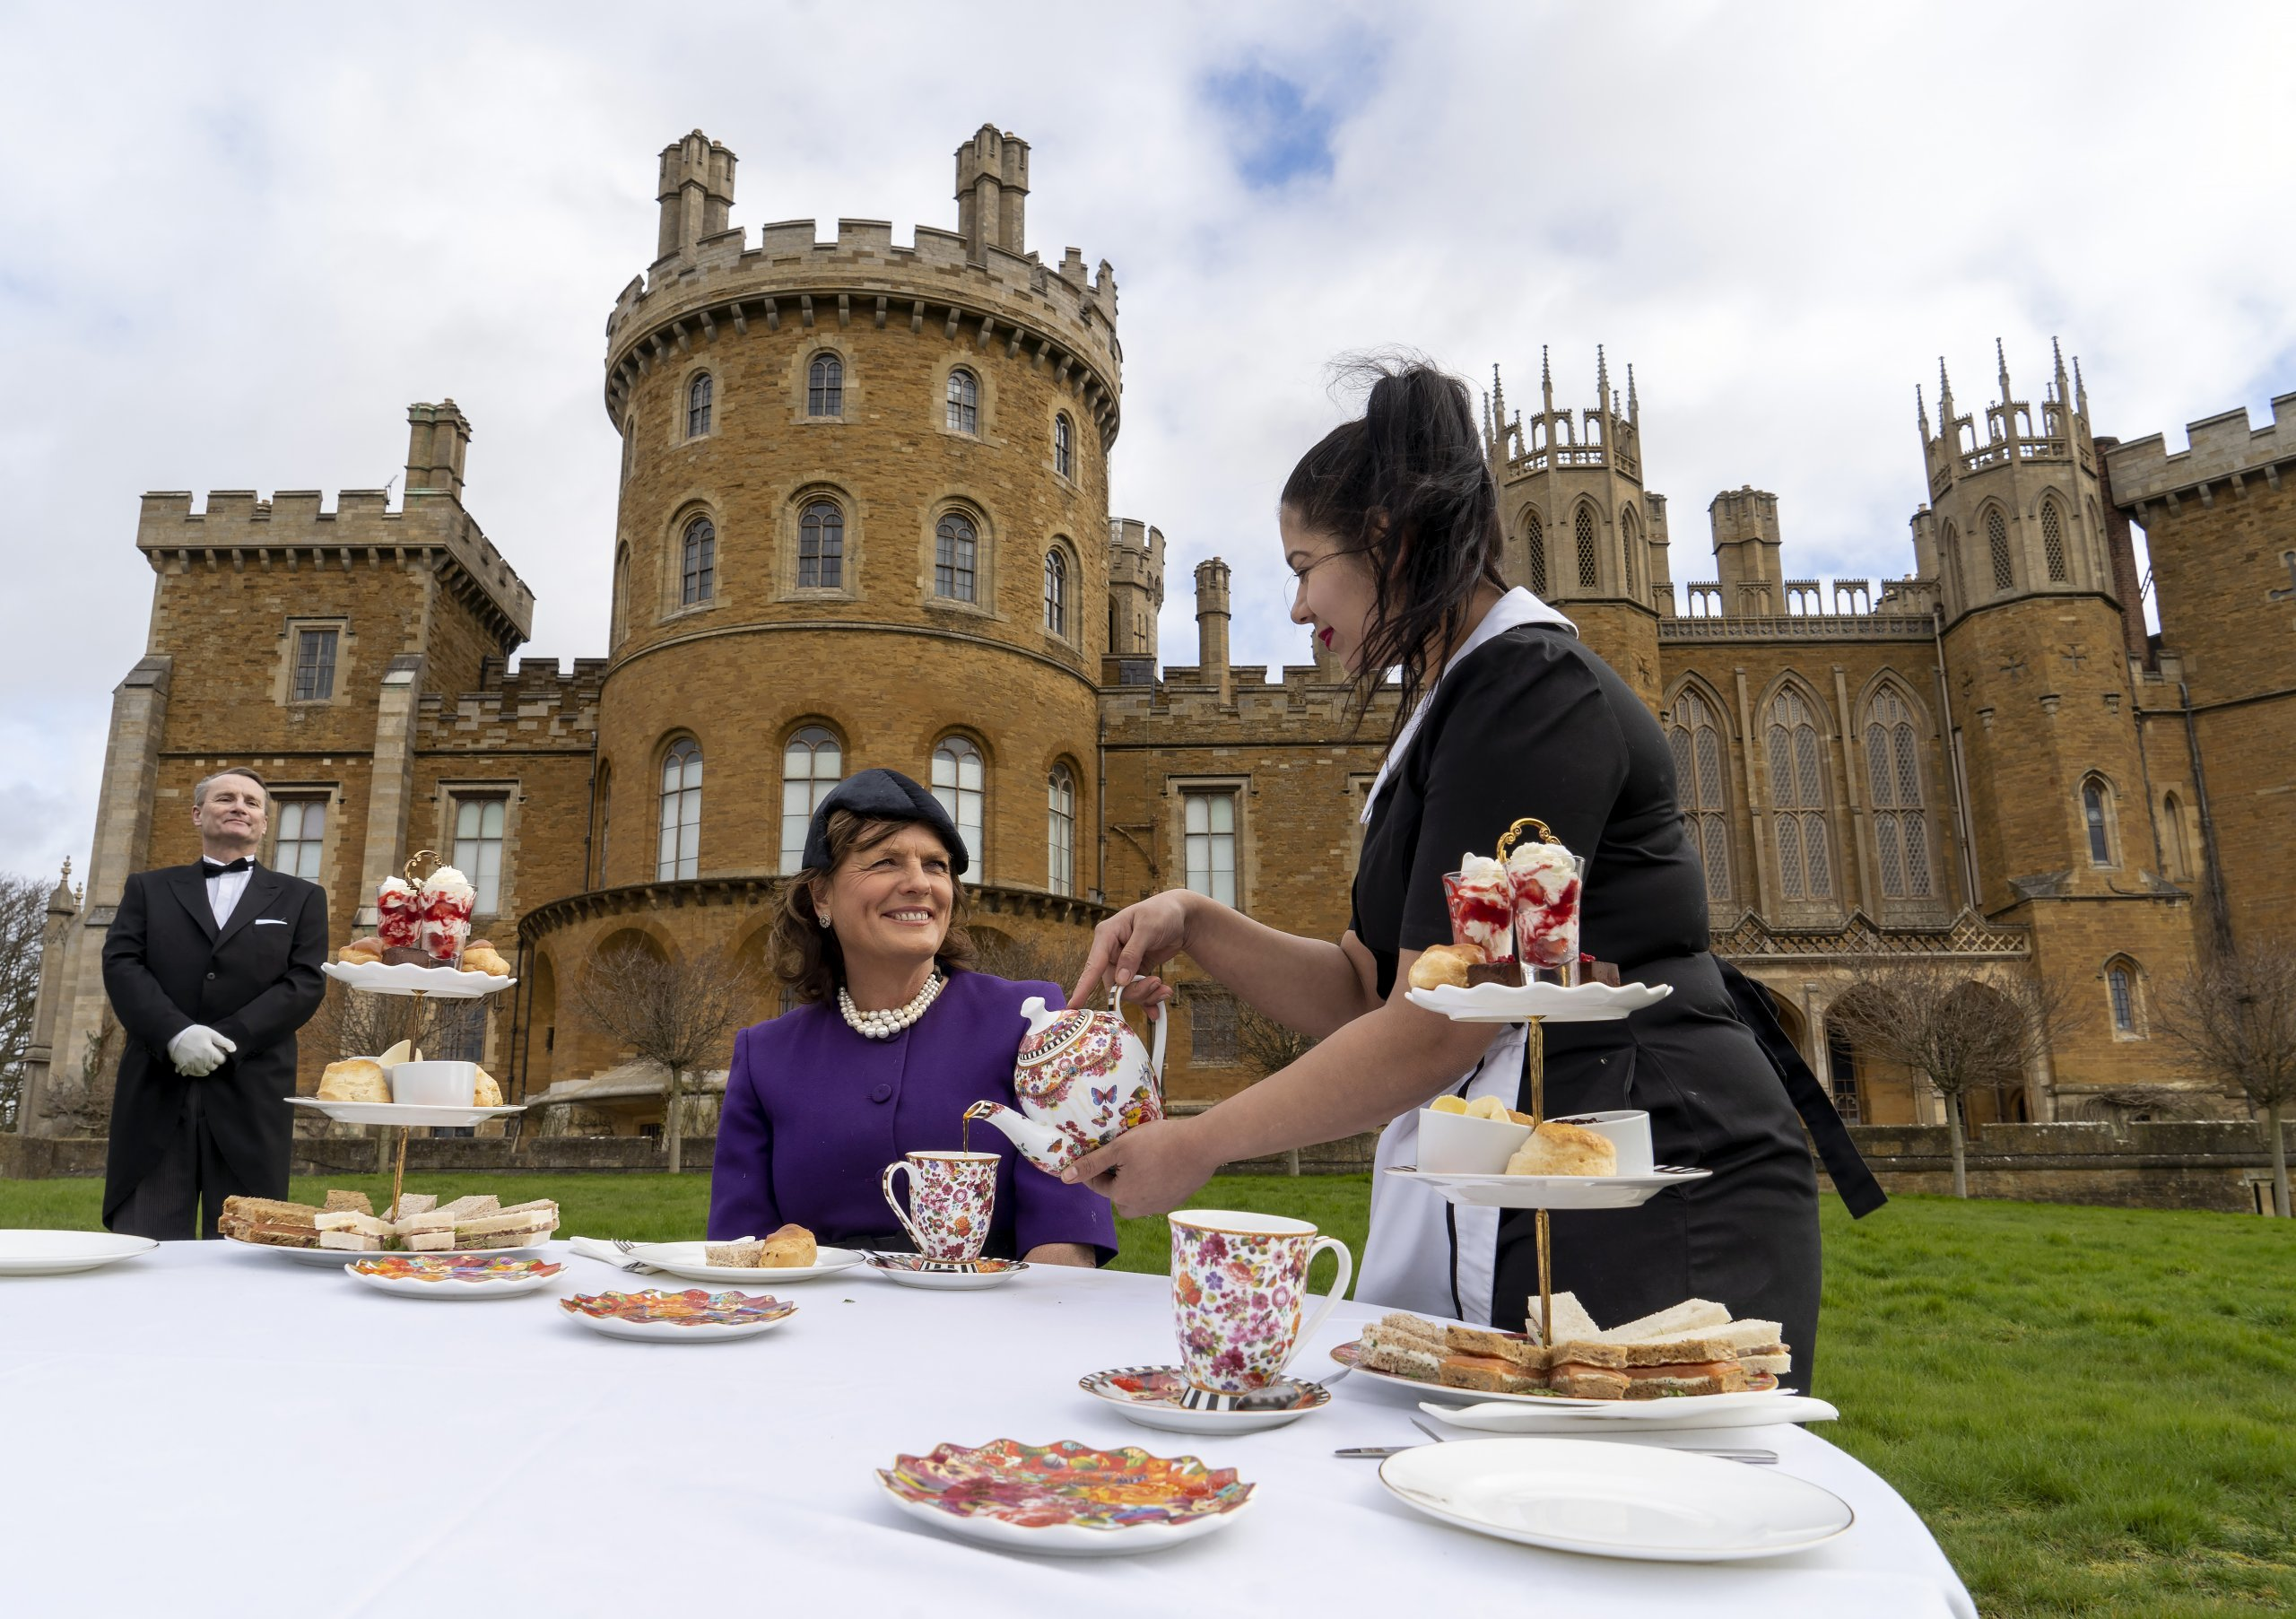 Duchess of Rutland enjoys afternoon tea on the front lawn at Belvoir Castle